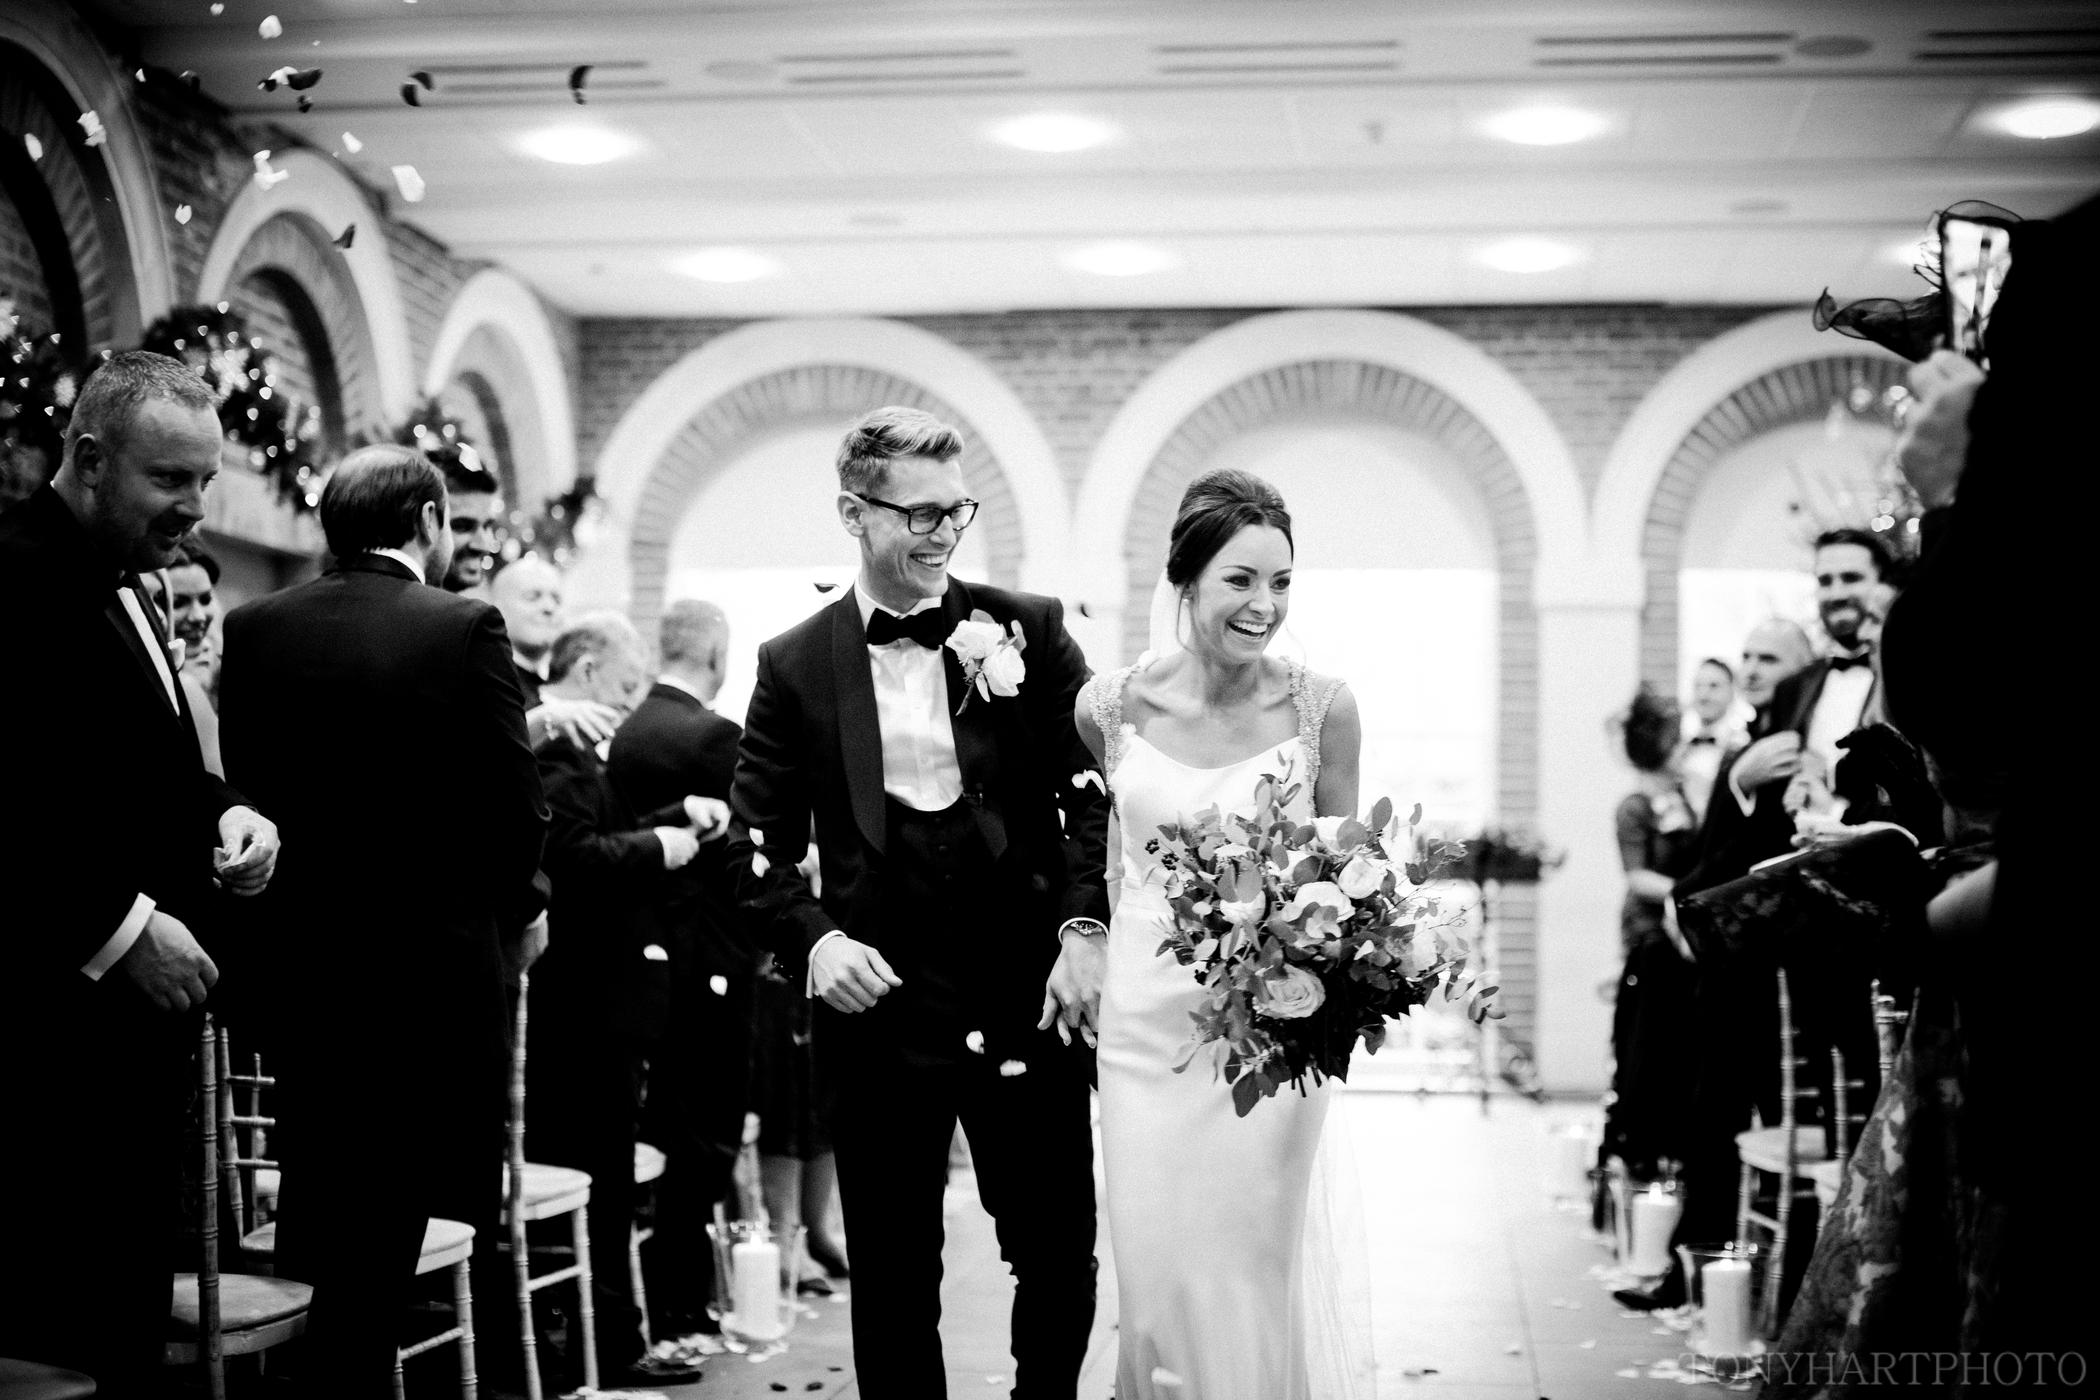 The Best Wedding Photographs of 2017 - Christie & Chris just after getting married at Great Fosters